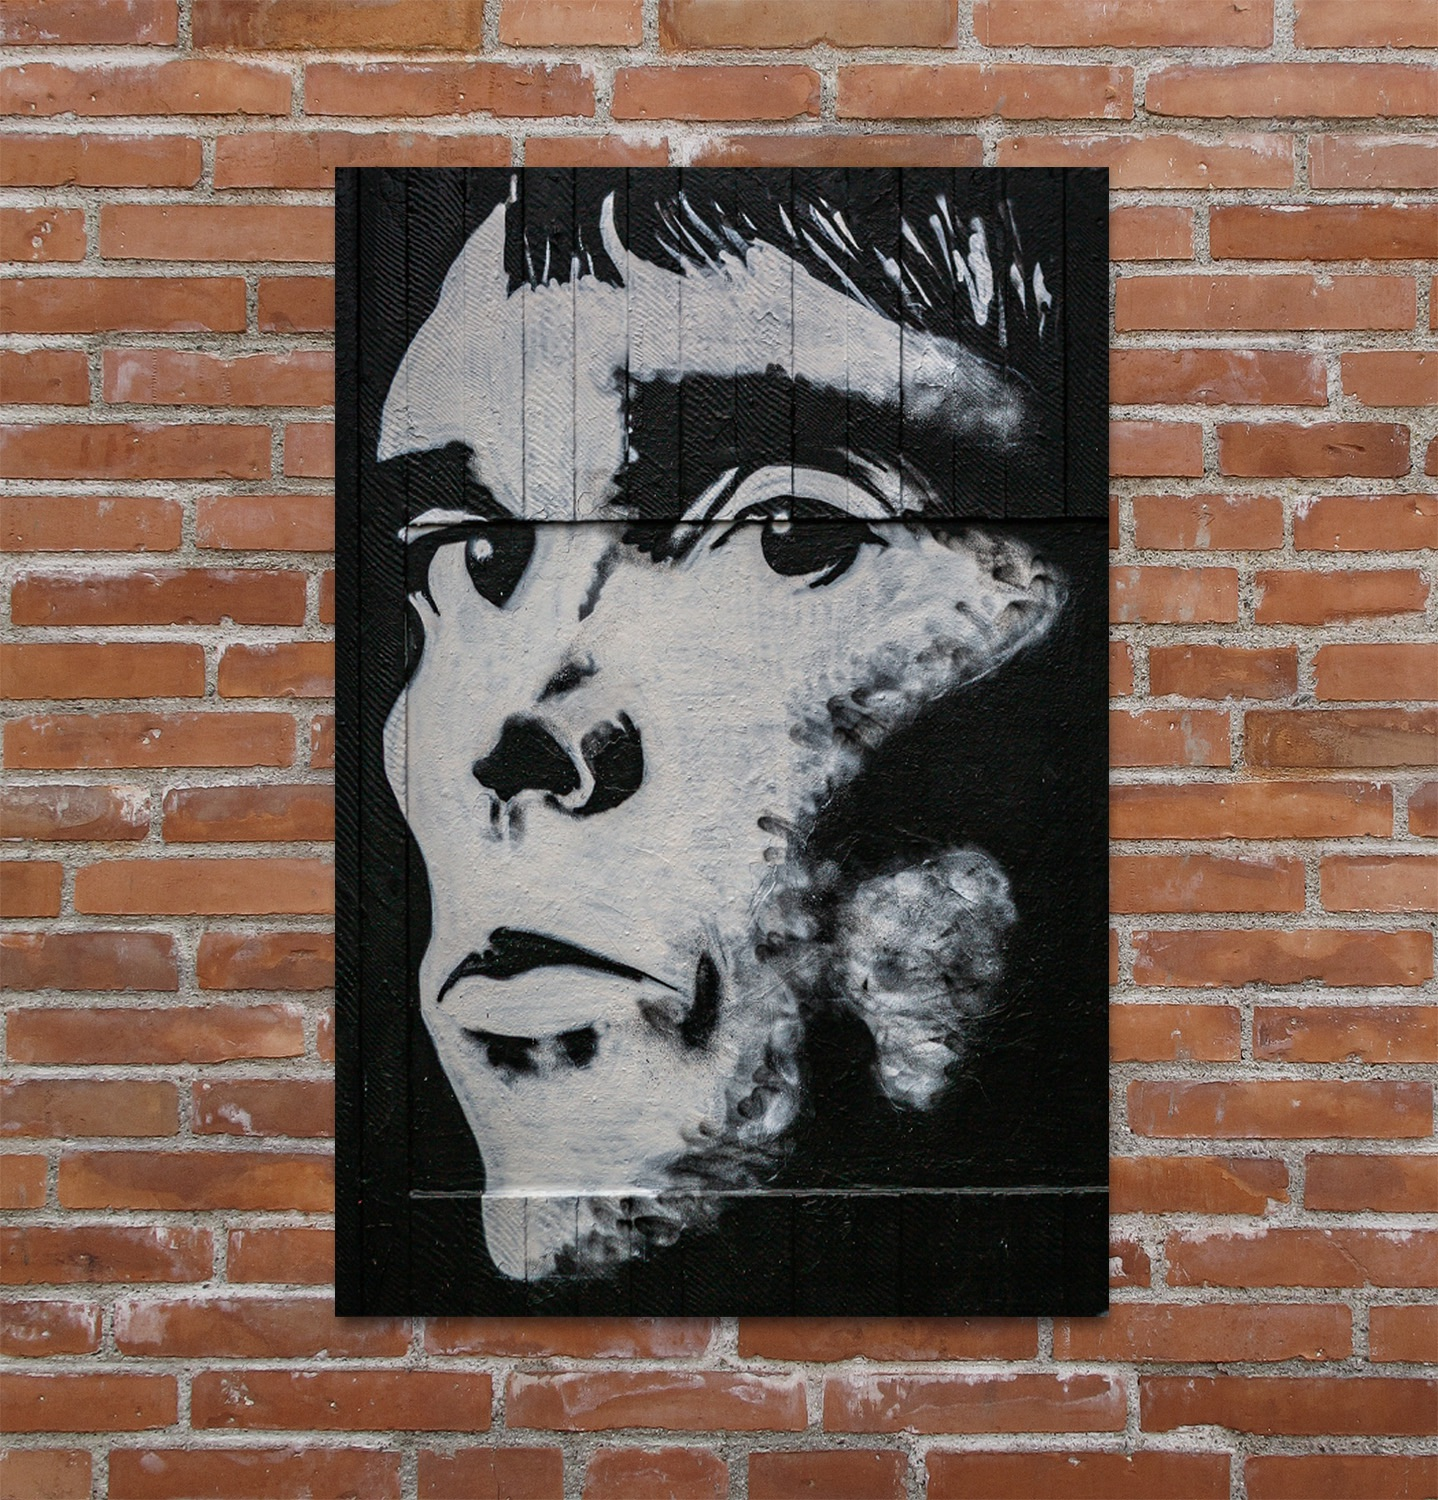 Monochrome graffiti art of Manchester music icon Ian Brown of the Stone Roses.